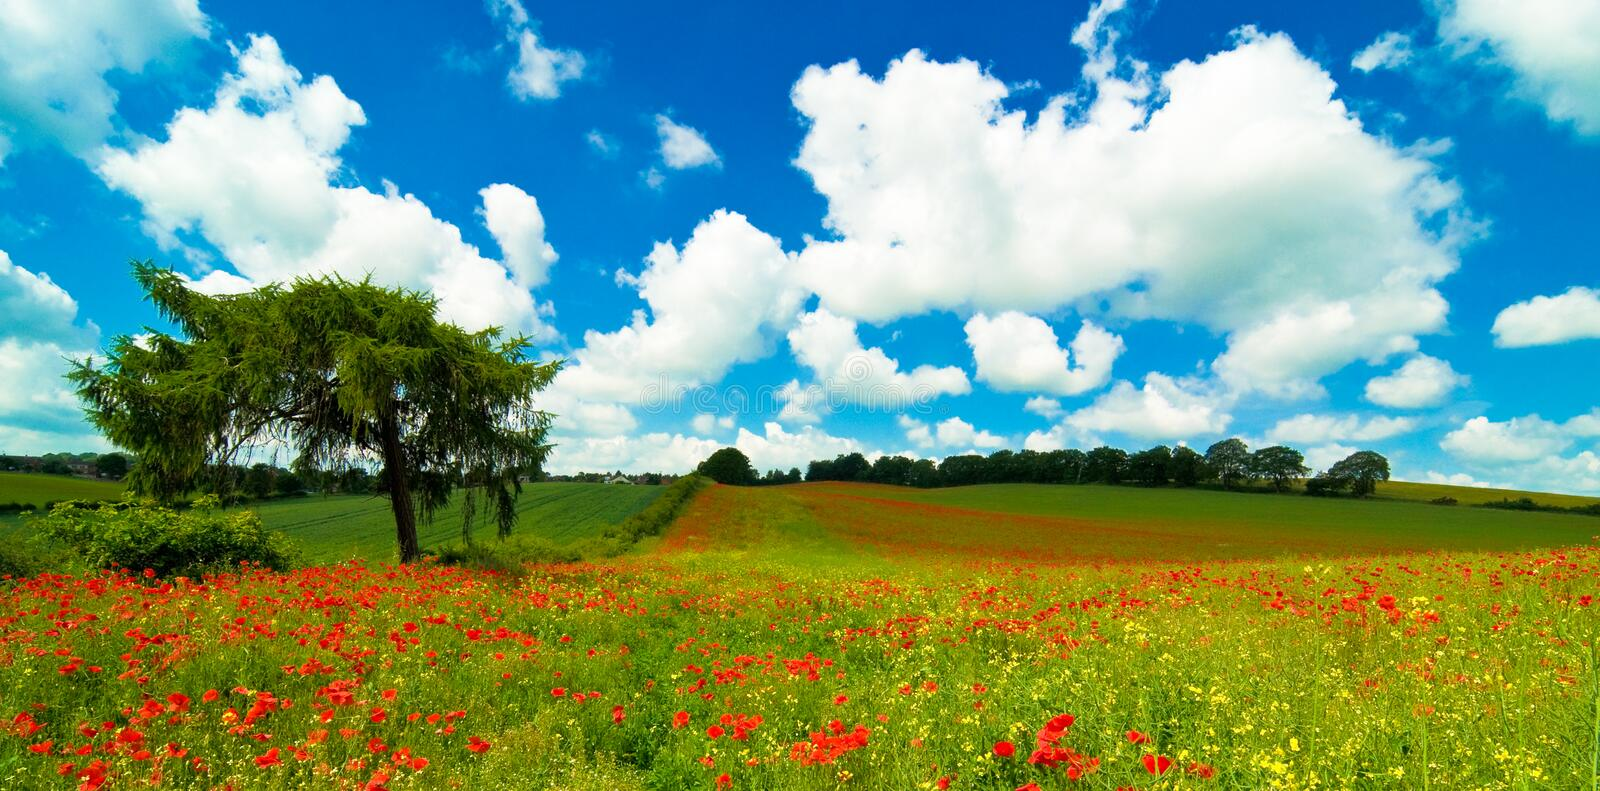 Vibrant Poppy Field royalty free stock images